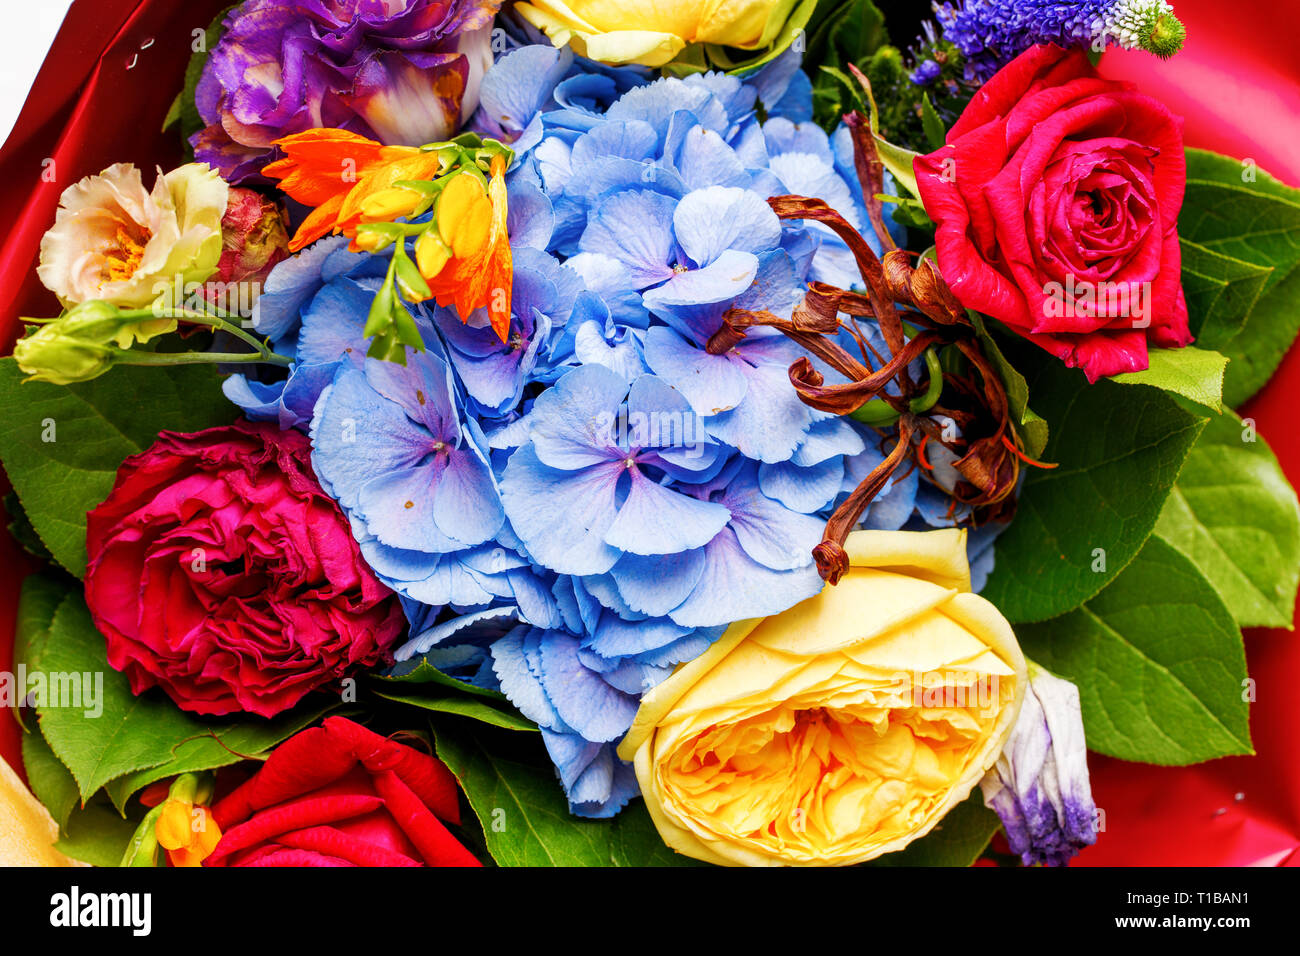 Close-up photo ofp bouquet of multi-colored roses. Stock Photo